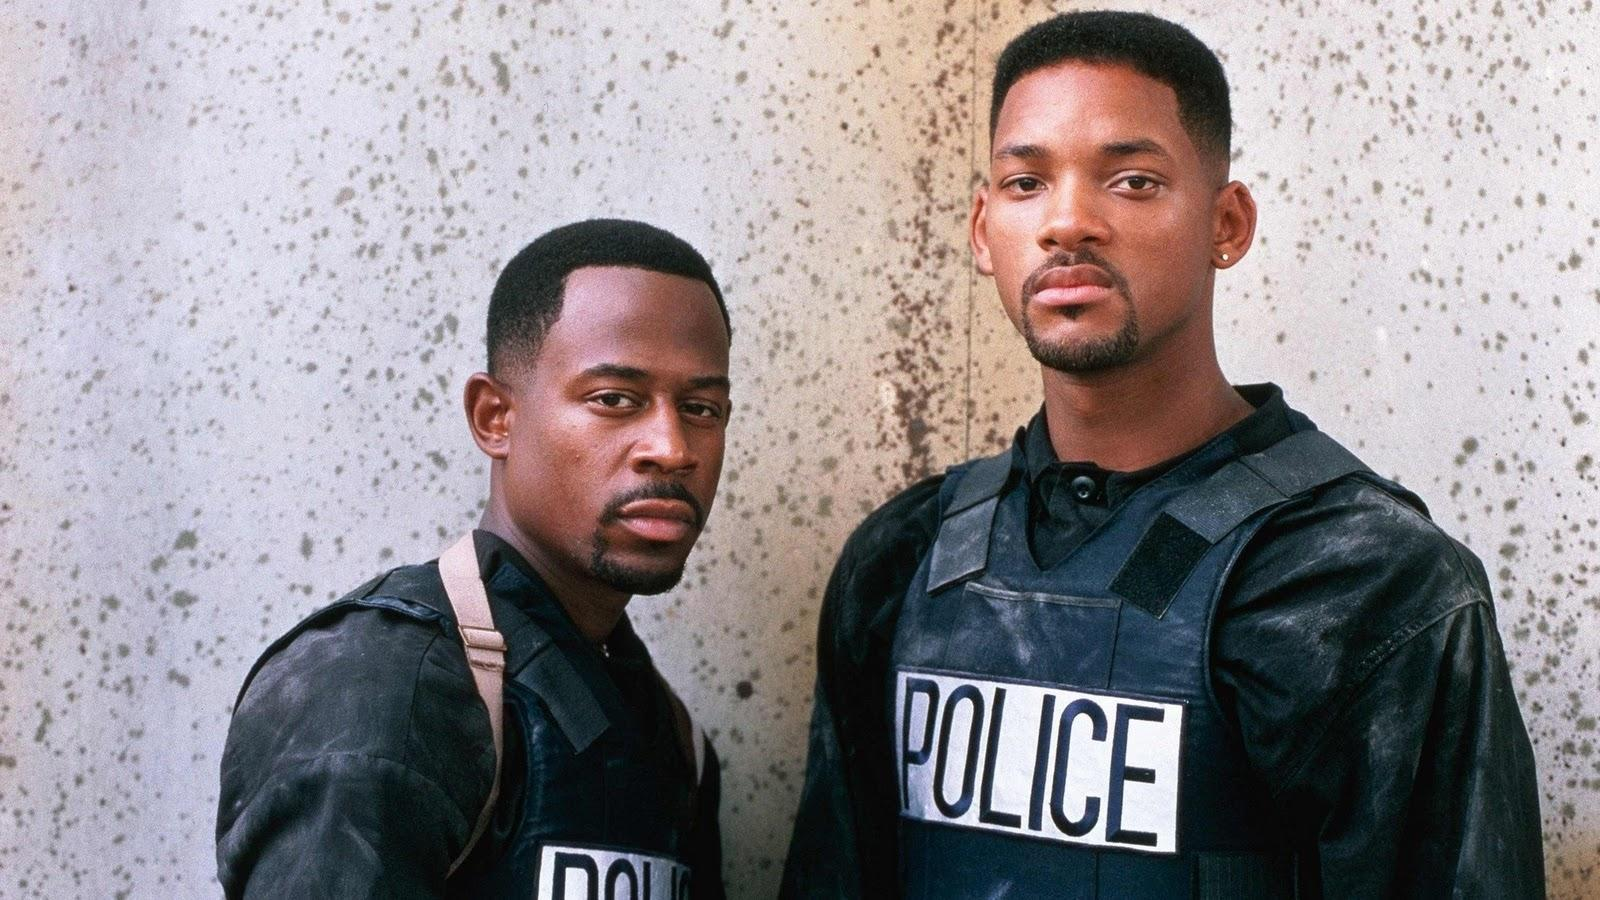 BAD BOYS FOR LIFE: LA SONY ANNULLA L'USCITA DEL SEQUEL